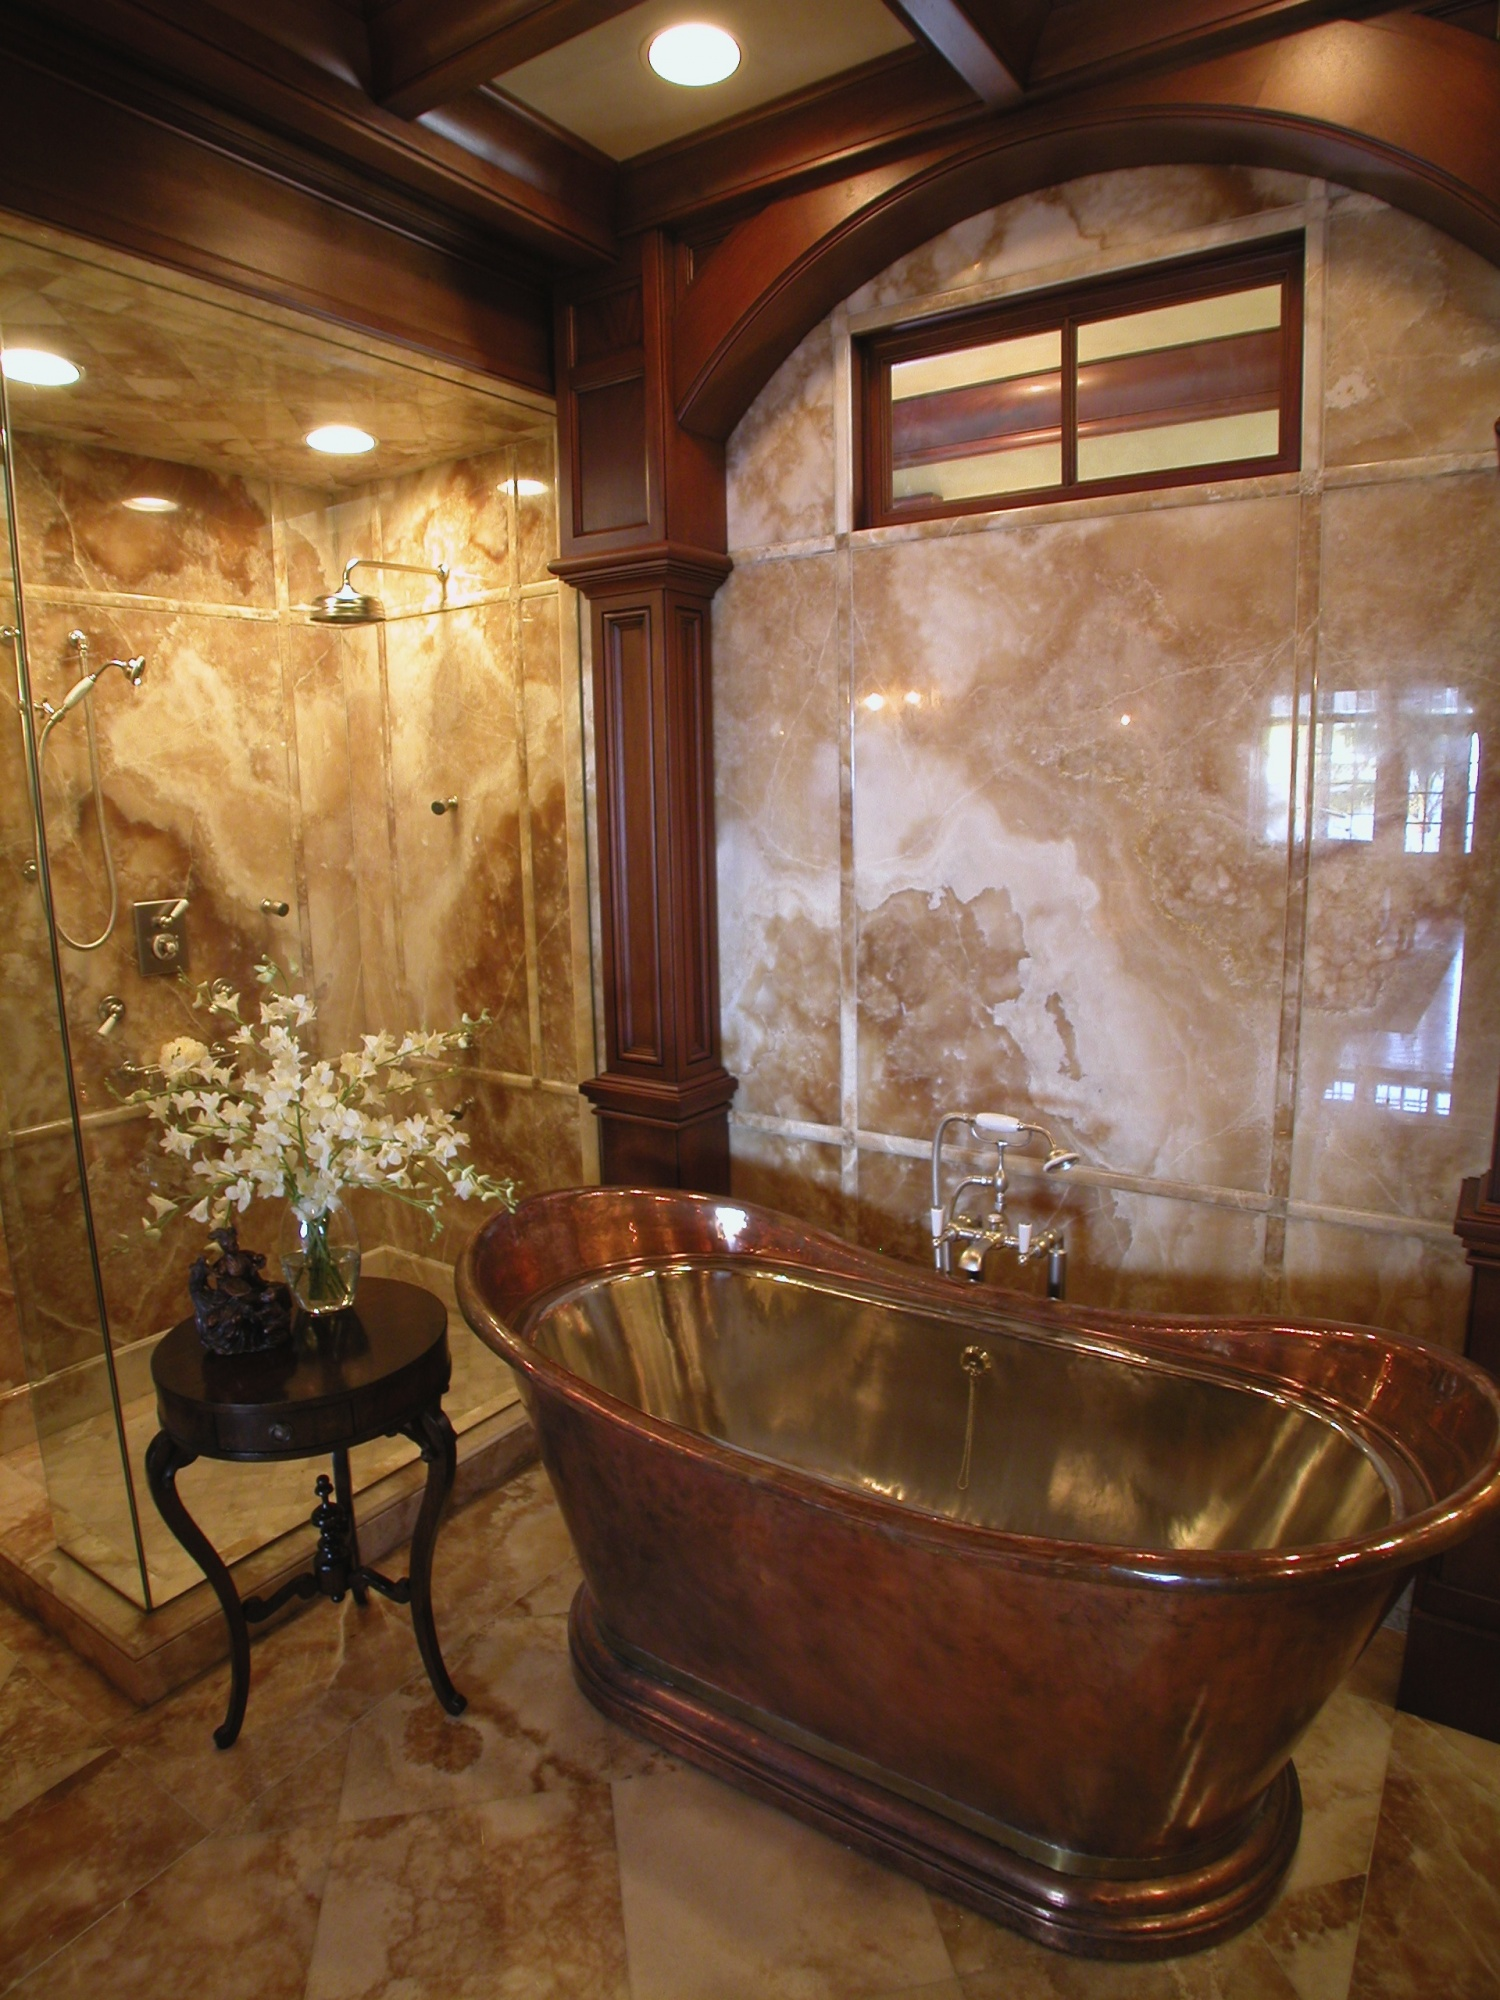 Copper and nickel tub are highlighted by the Onyx paneled walls within the master bathroom.